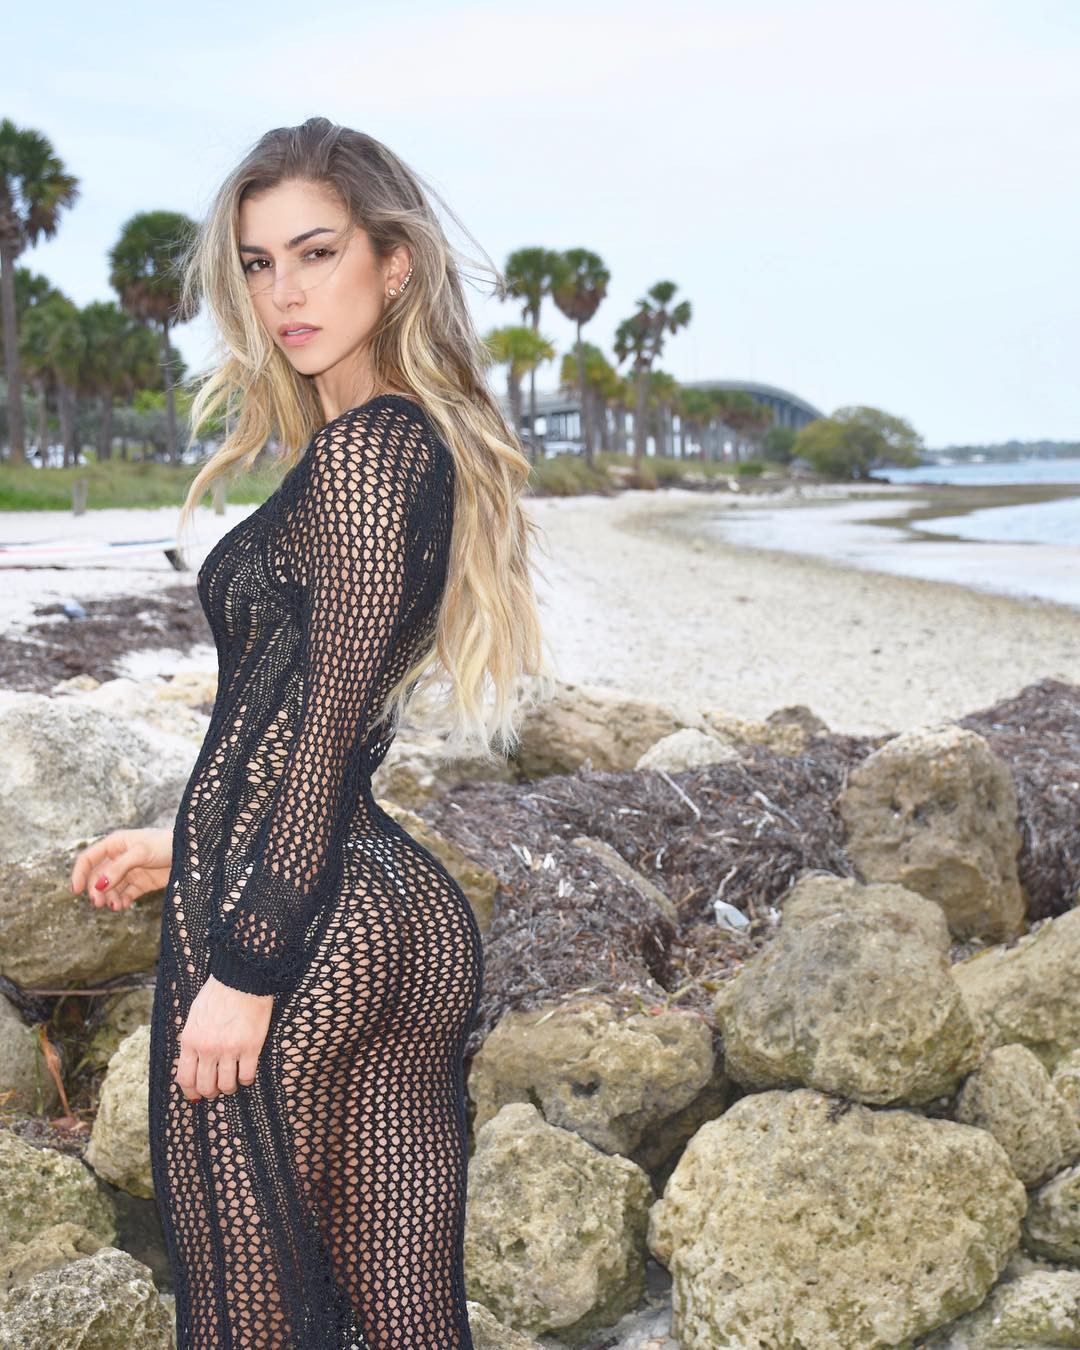 Live the moment in style with anllela sagra 2018, Selena Gomez